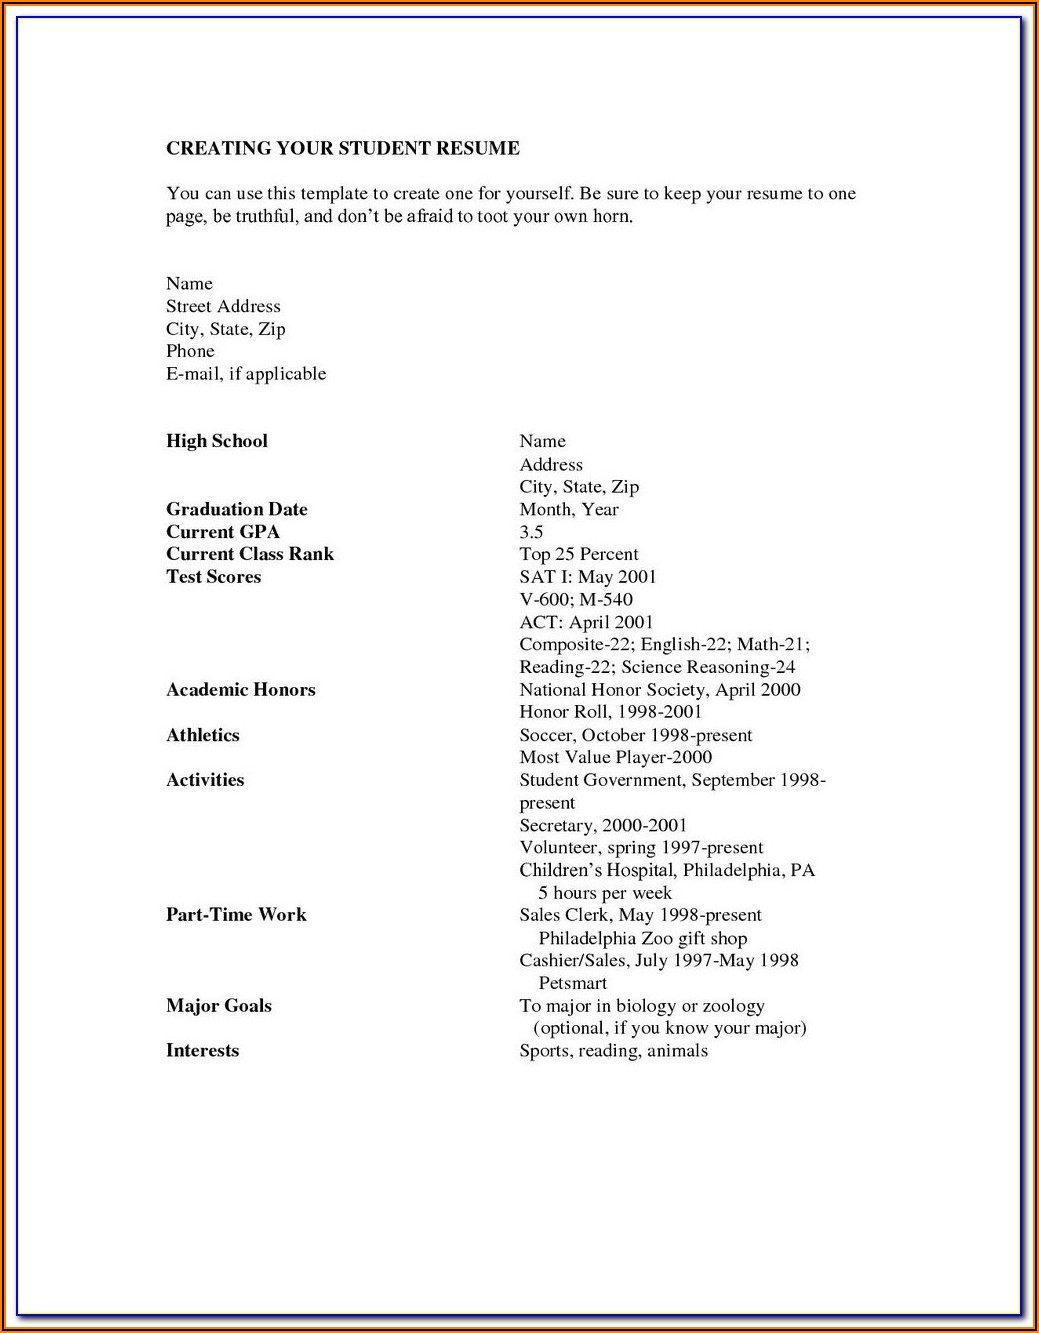 Fill In The Blank Resume For Highschool Students